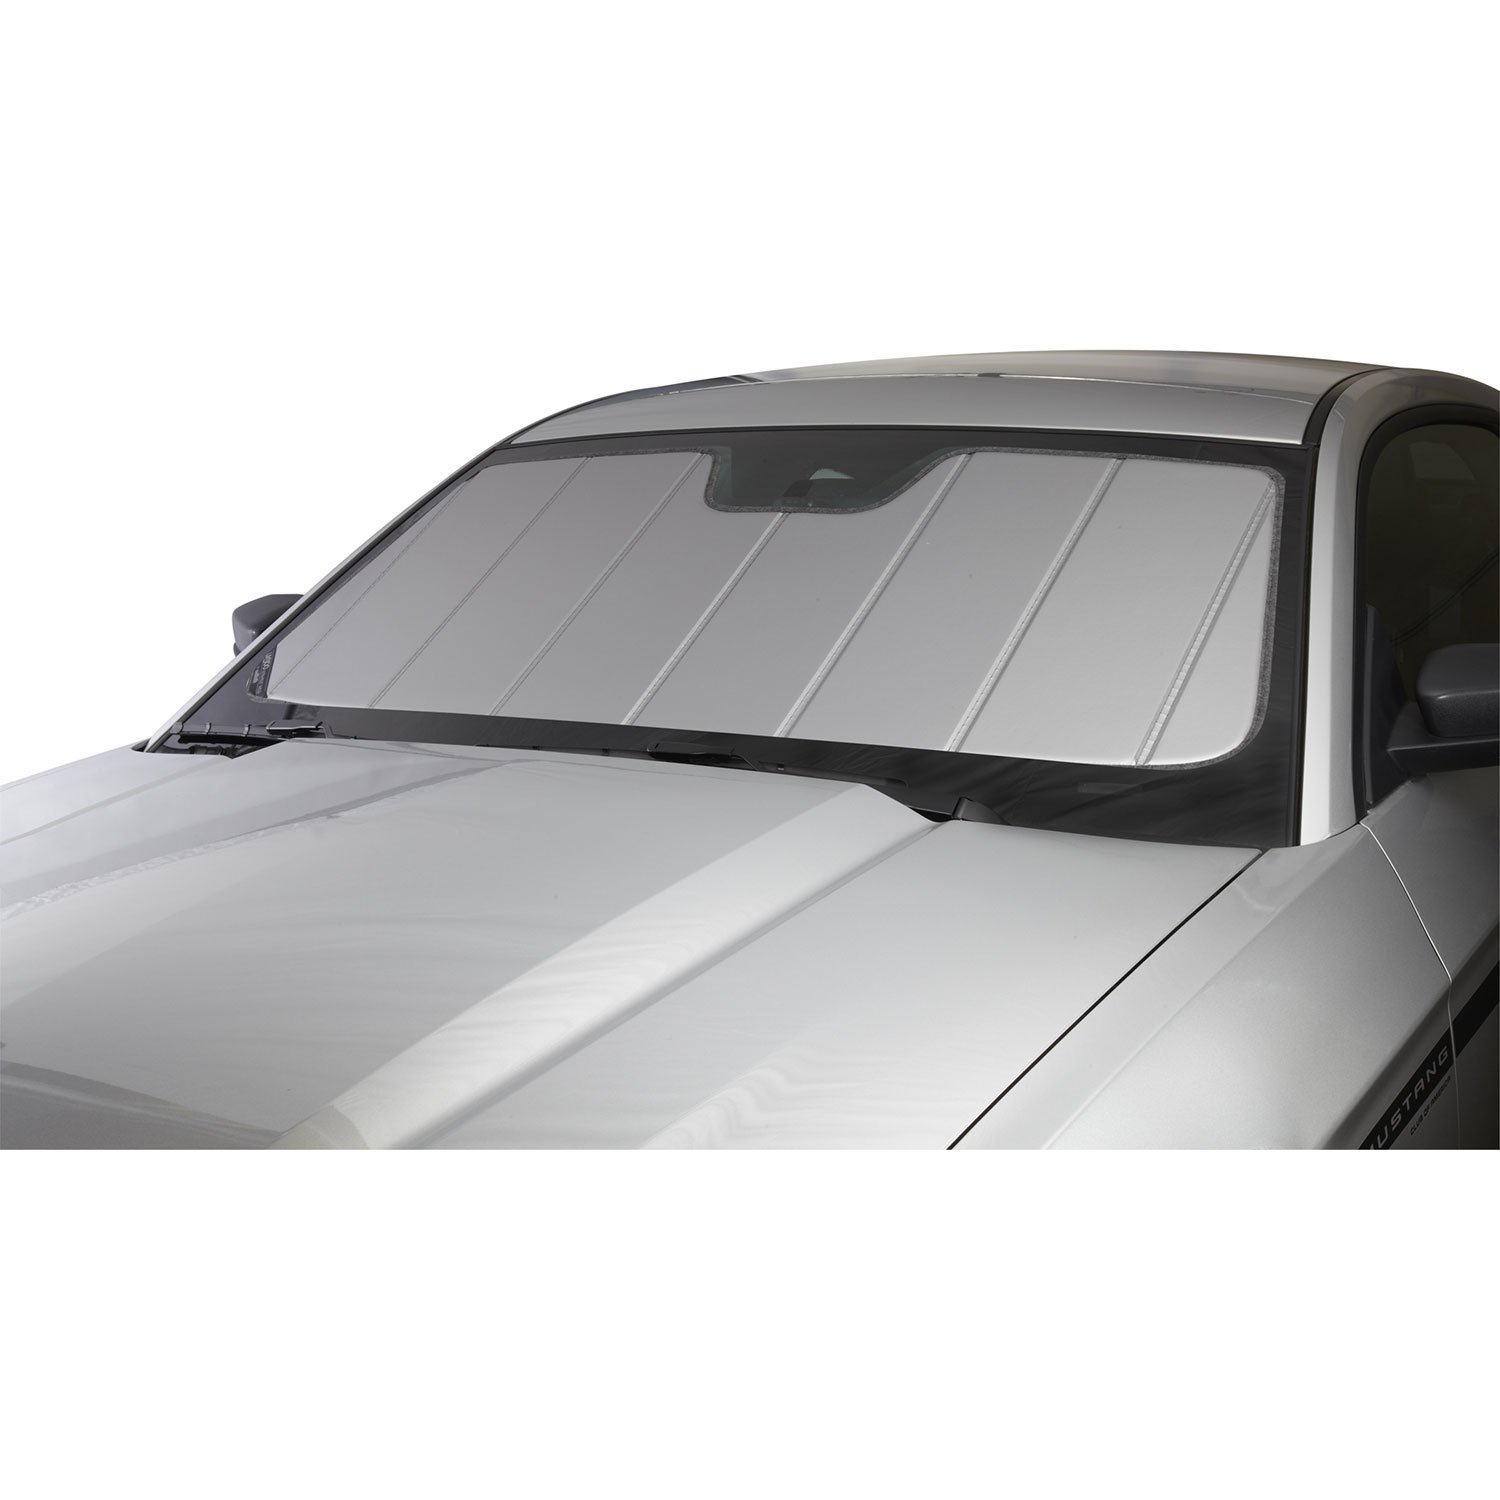 Covercraft UV10246SV Silver UVS 100 Custom Fit Sunscreen for Select Mazda Miata Models 1 Pack Laminate Material